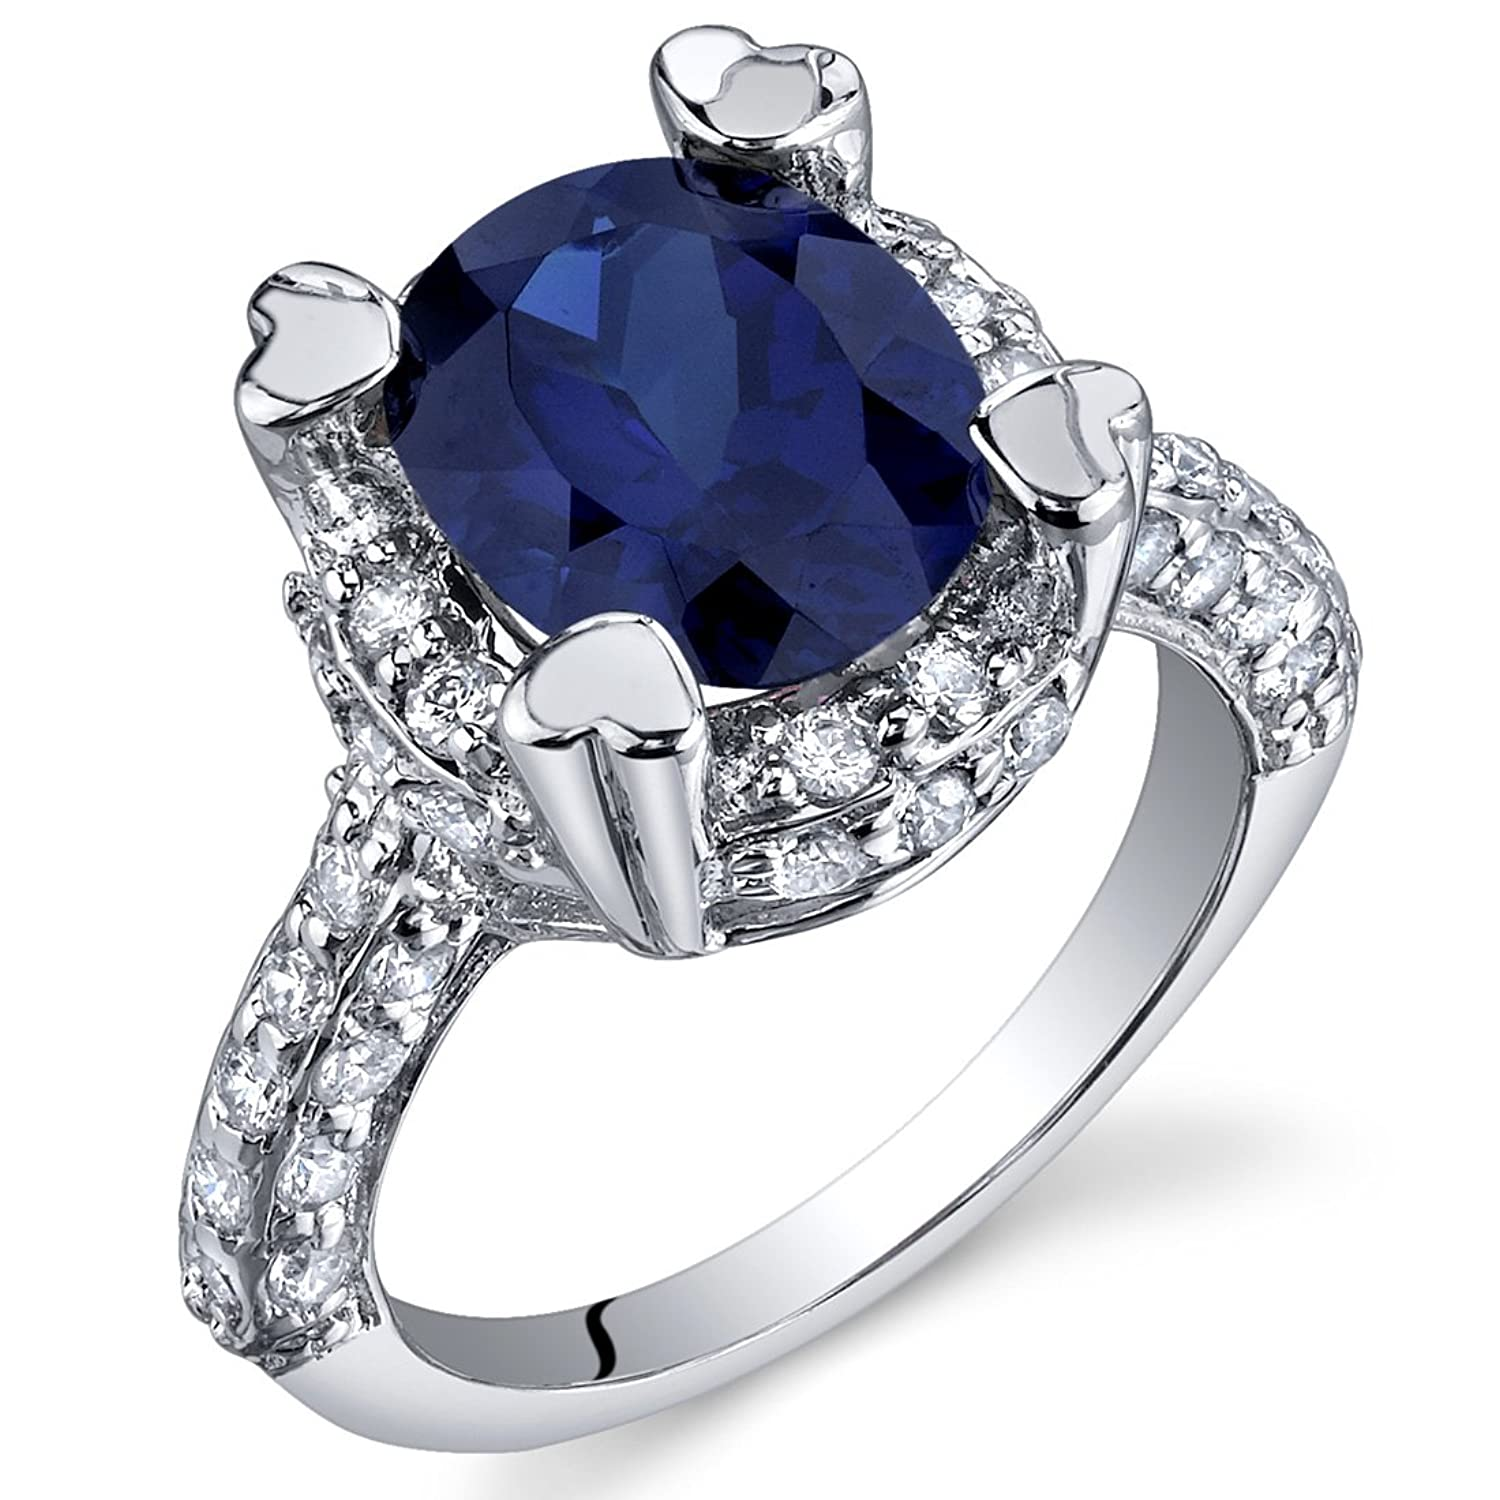 Created Sapphire Ring Sterling Silver Rhodium Nickel Finish Oval Shape 3.75 Carats Sizes 5 to 9